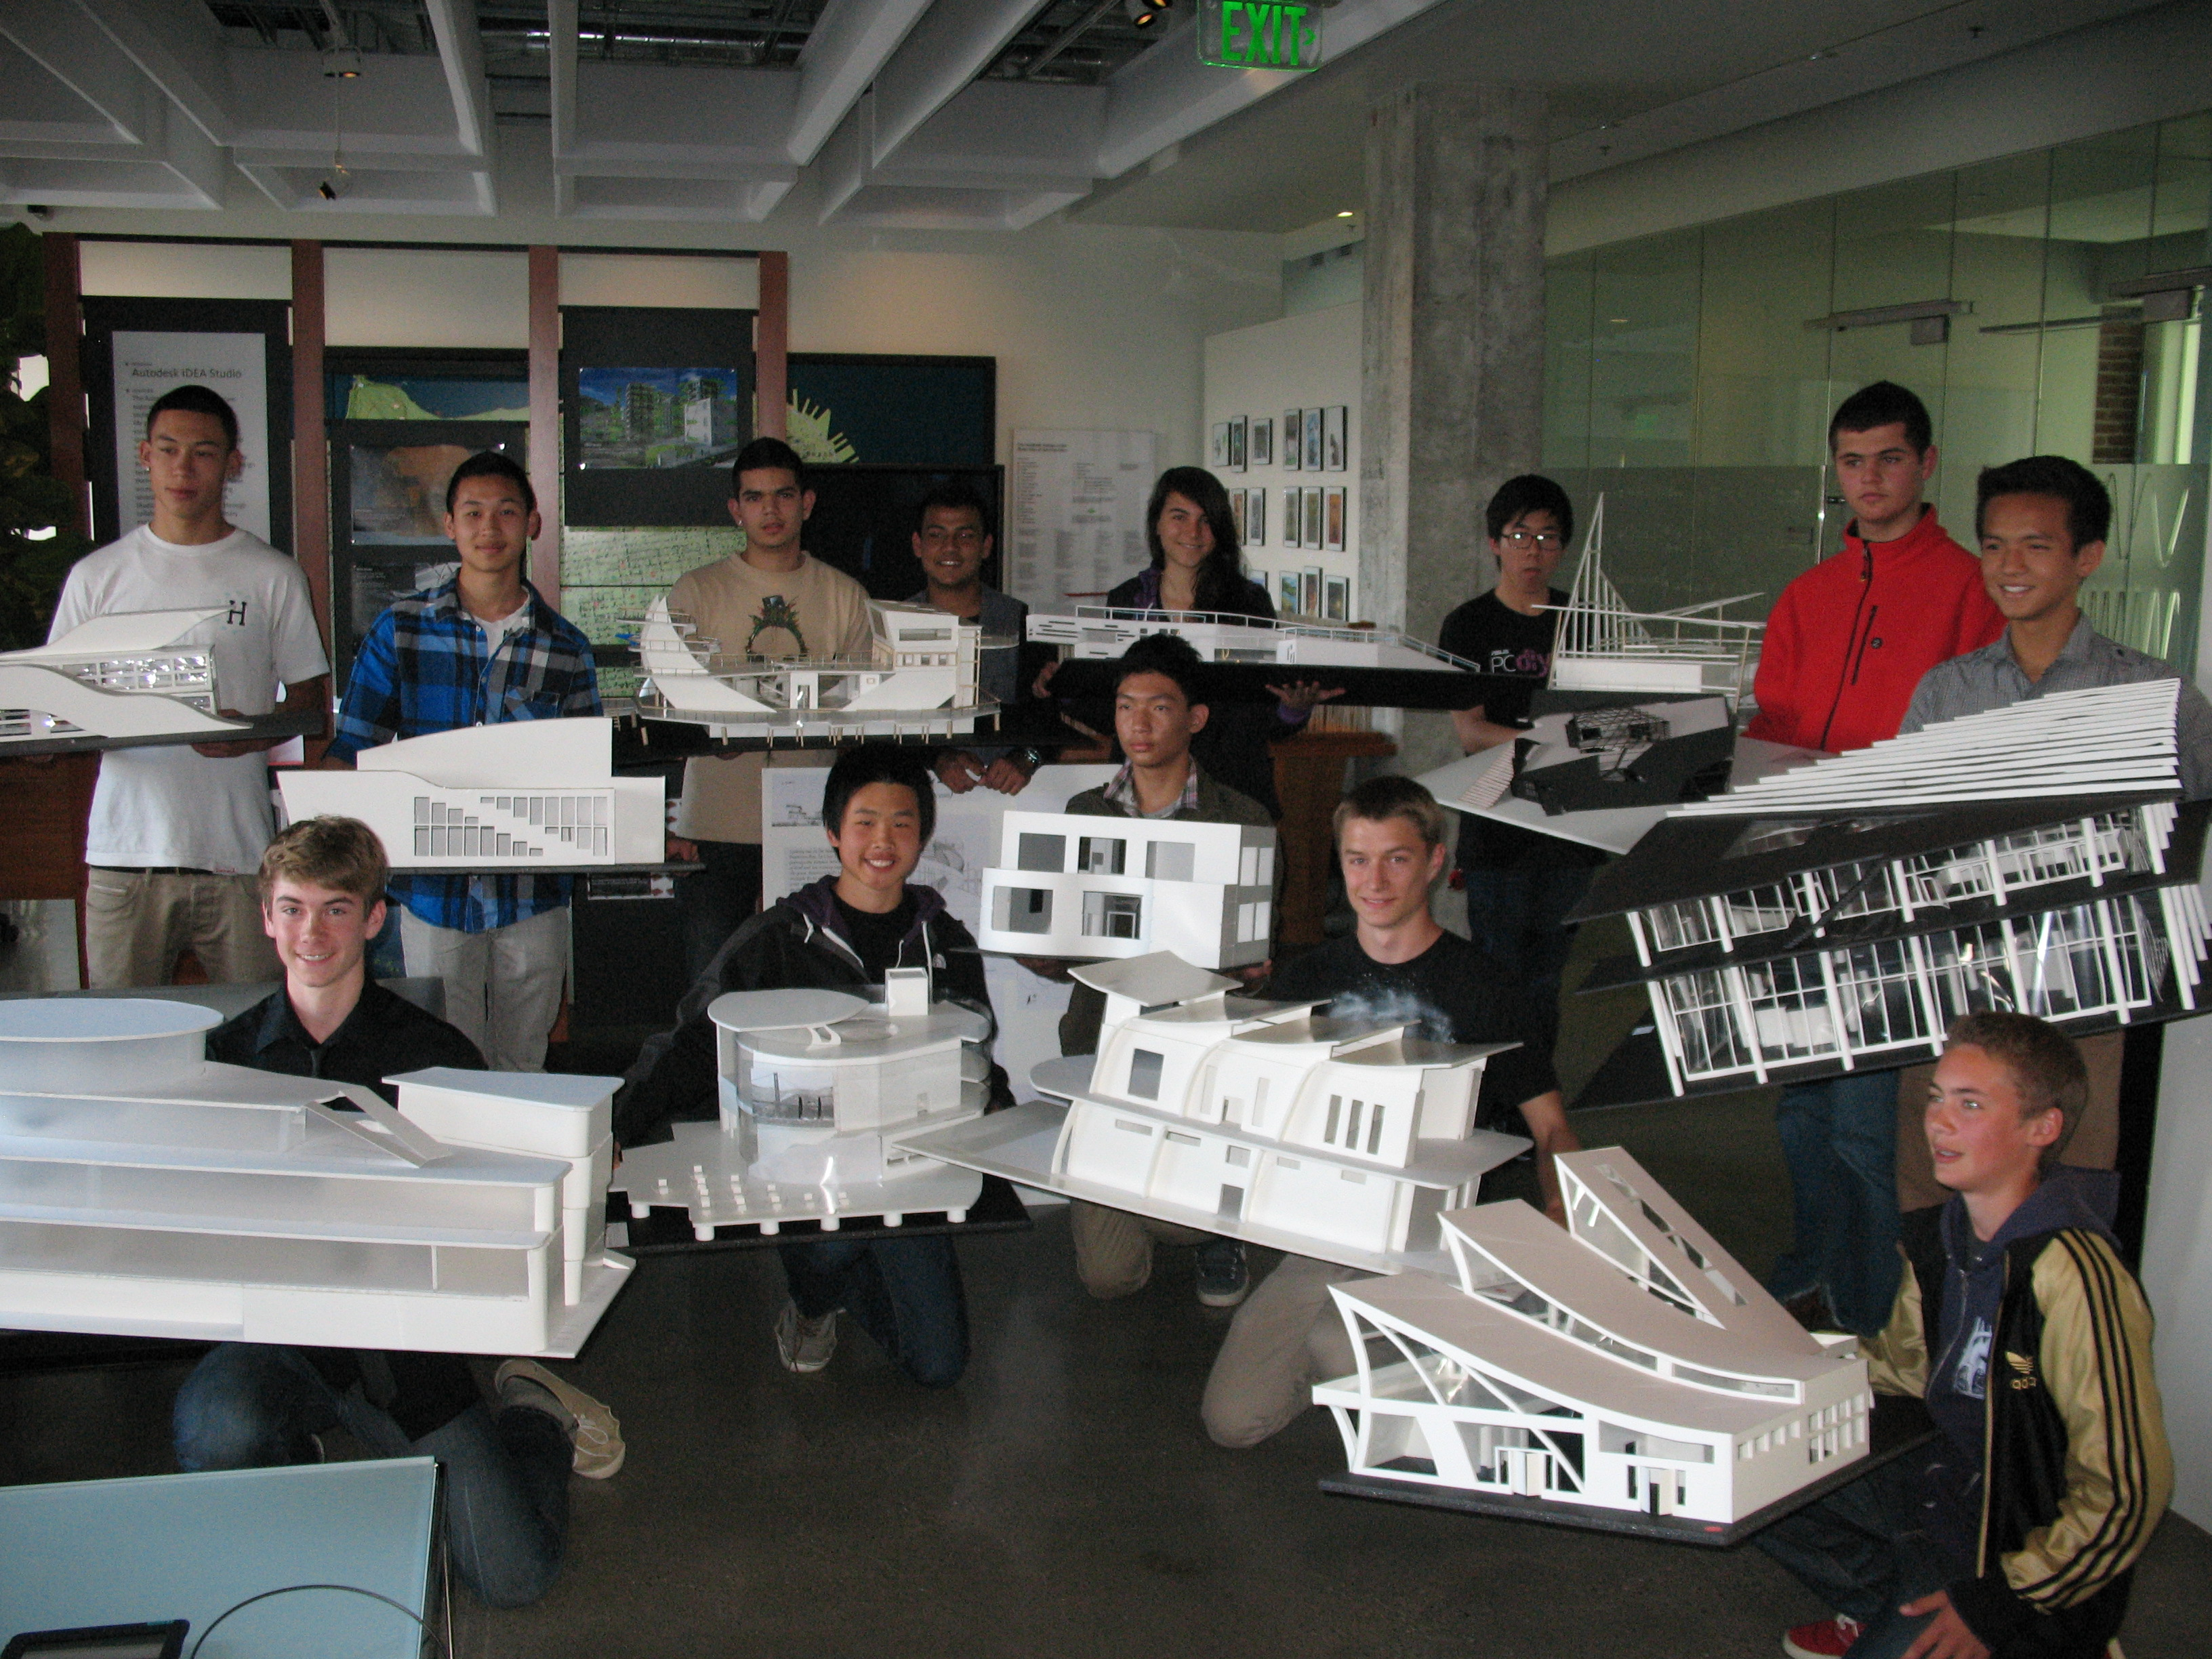 Architectural Foundation Of San Francisco The Annual Architectural Design Competition For High